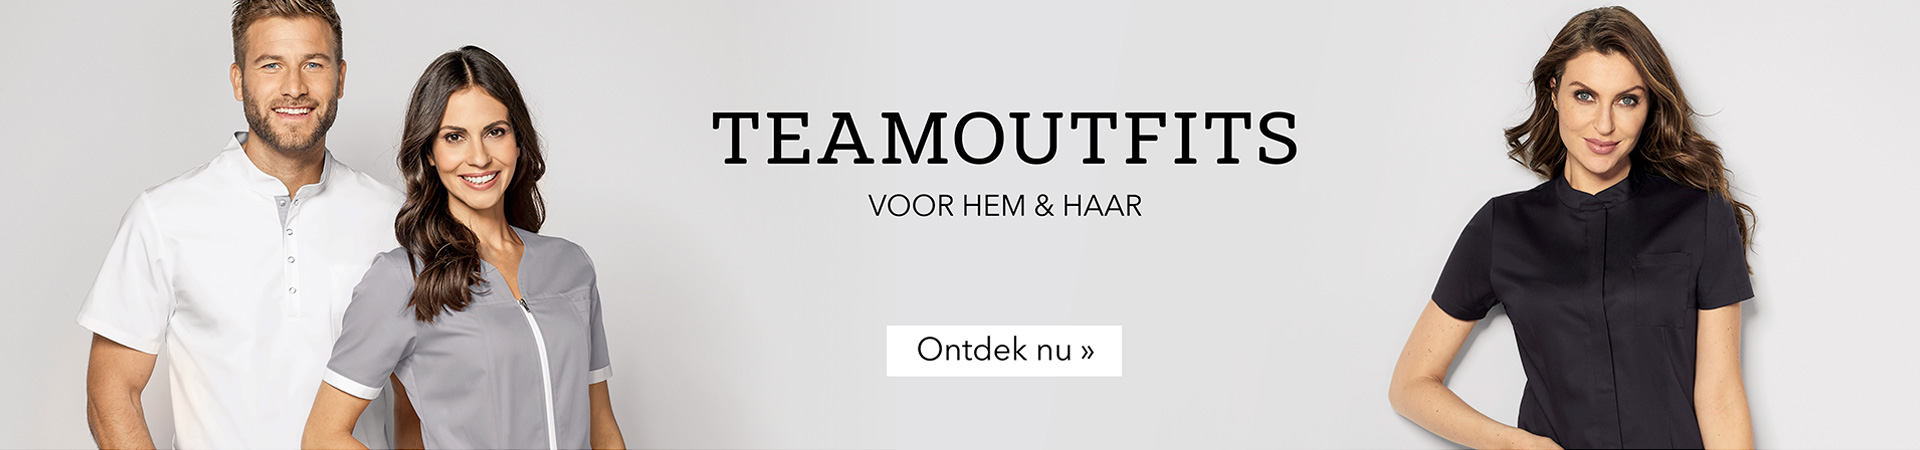 Teamoutfits